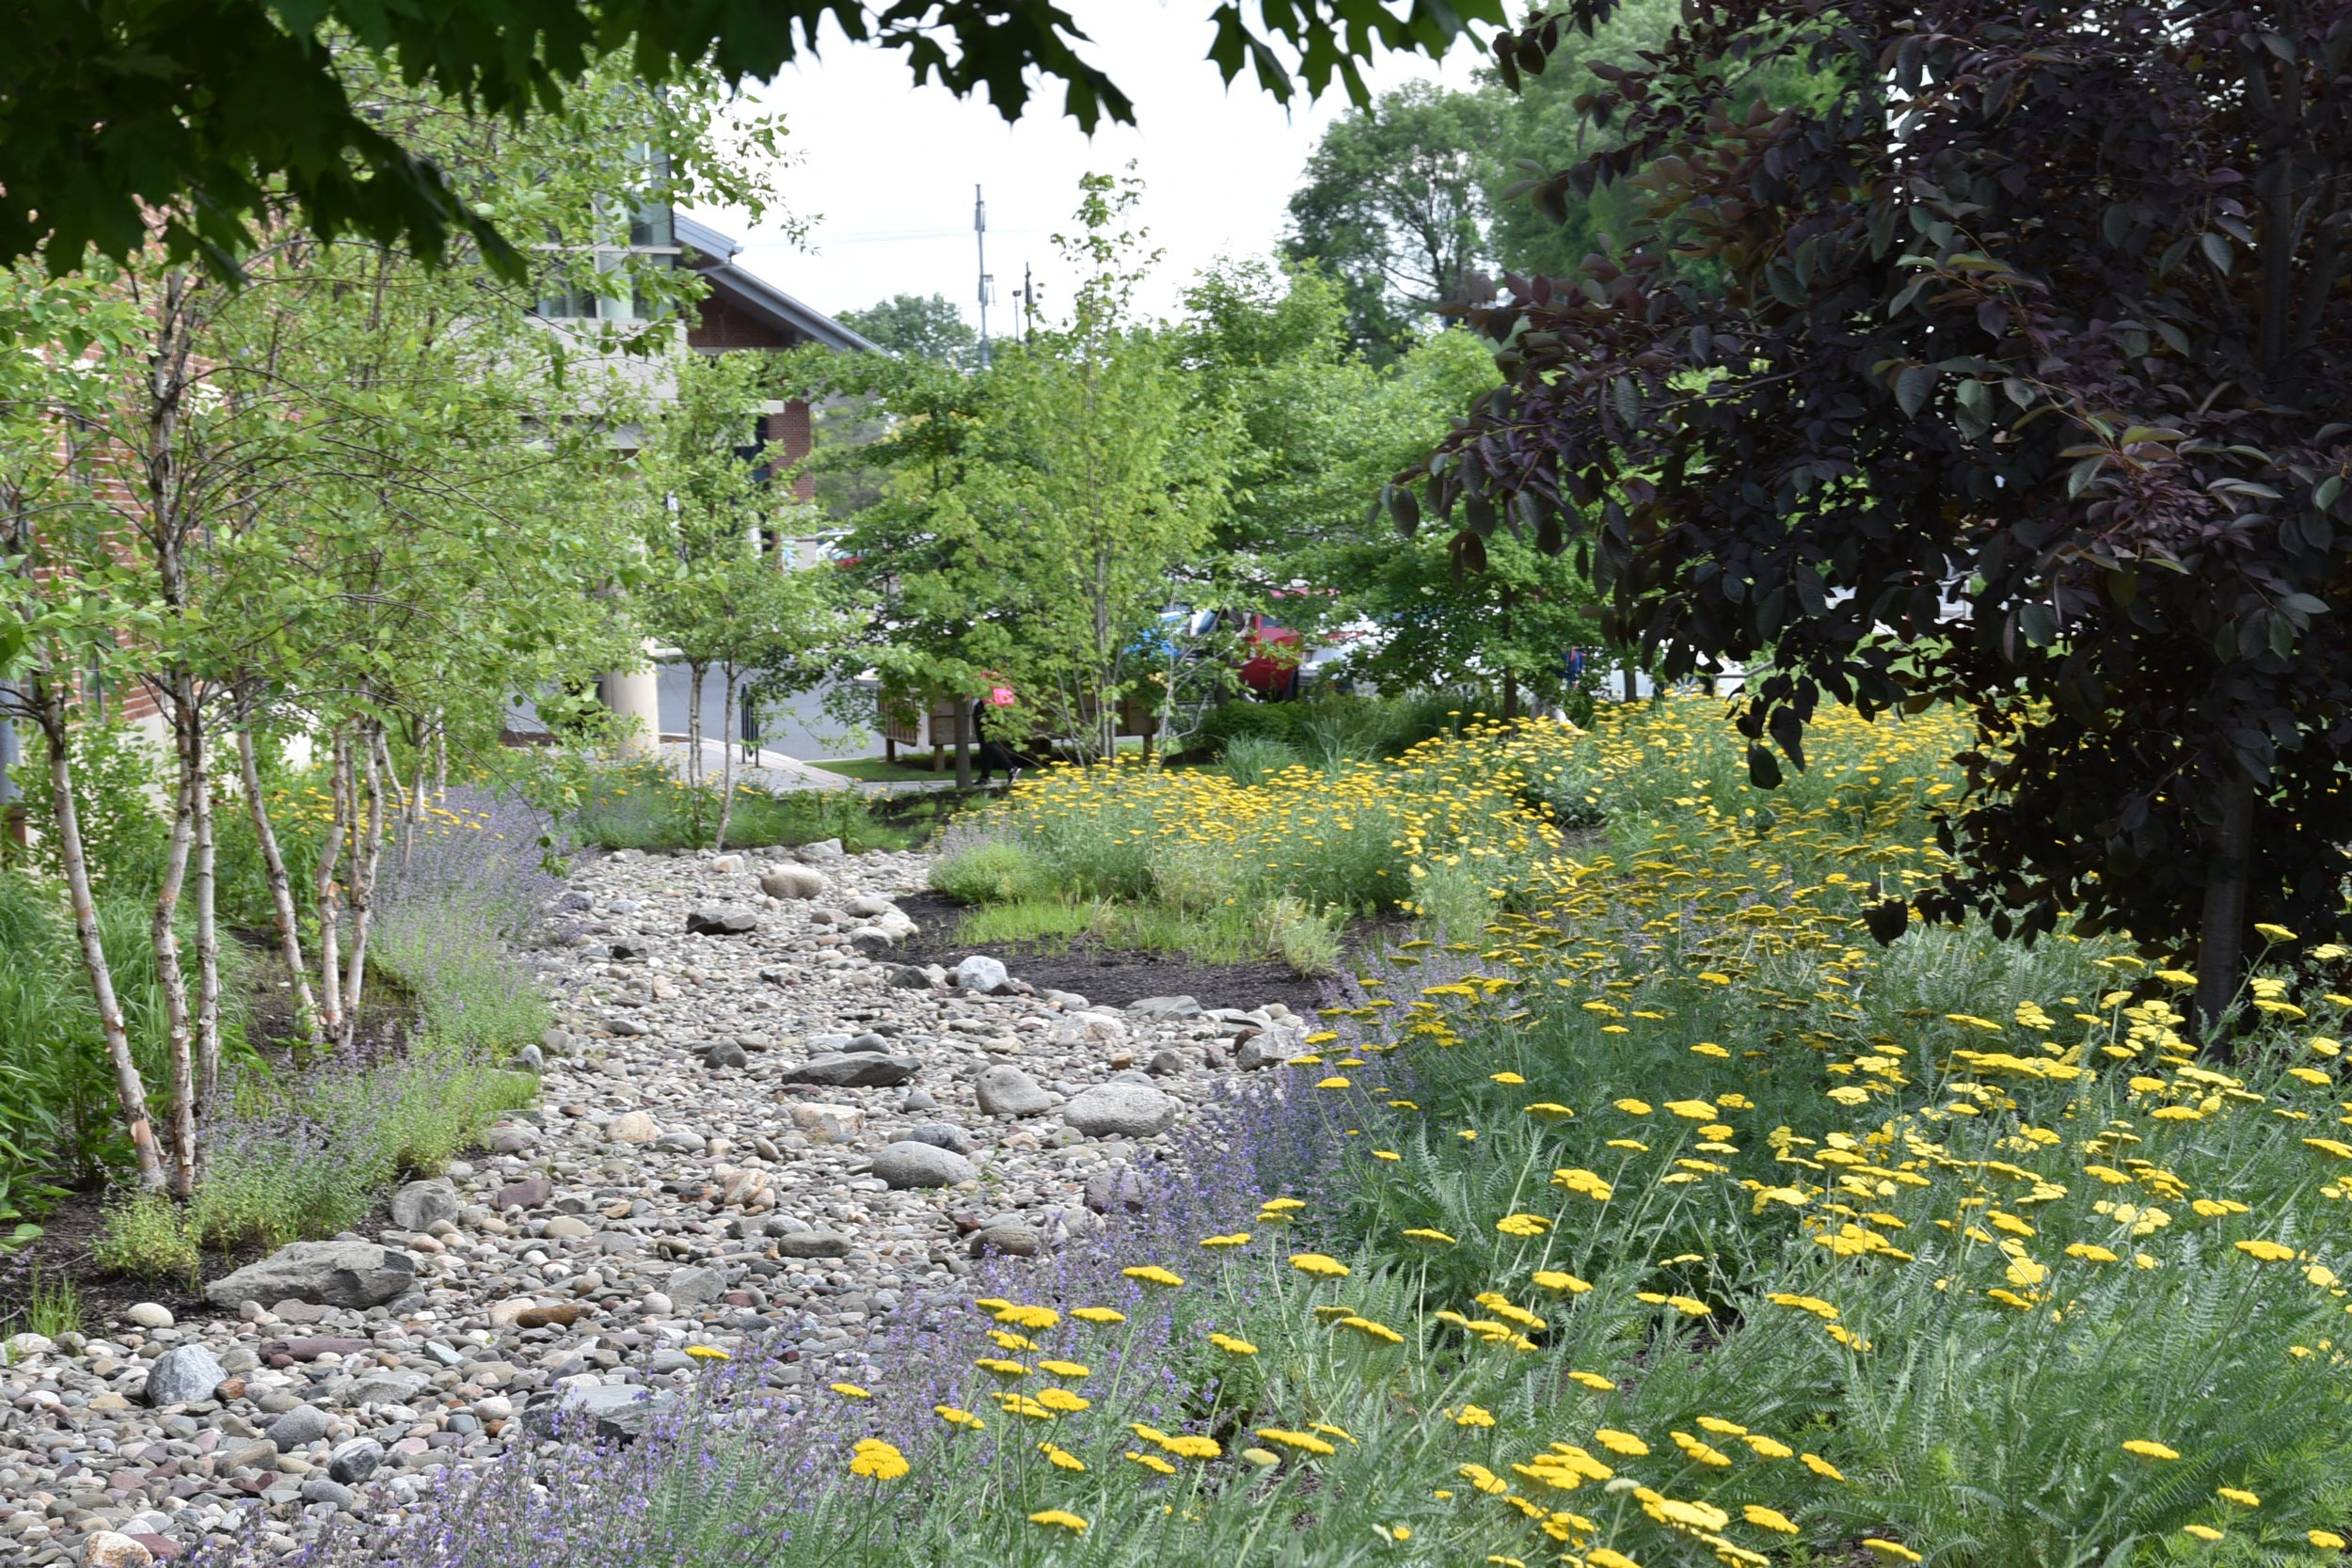 We transformed a lawn detenion basin into a dry creek bed and rain garden with pollinator species and grasses to improve water quality entering the basin.